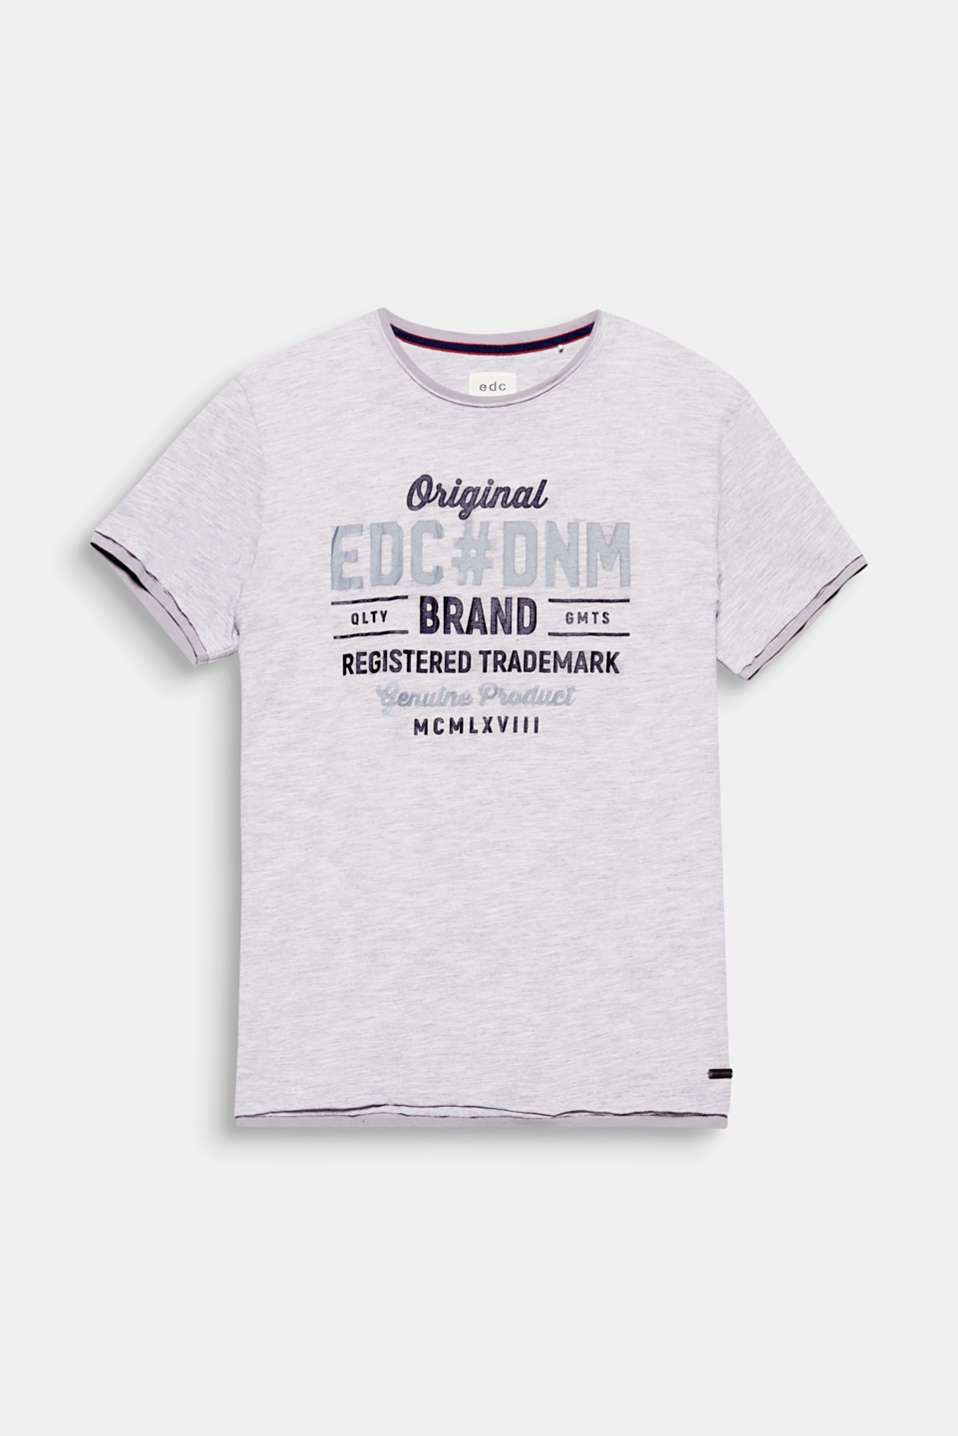 EDC, your denim brand. The large logo print makes this T-shirt a statement piece.